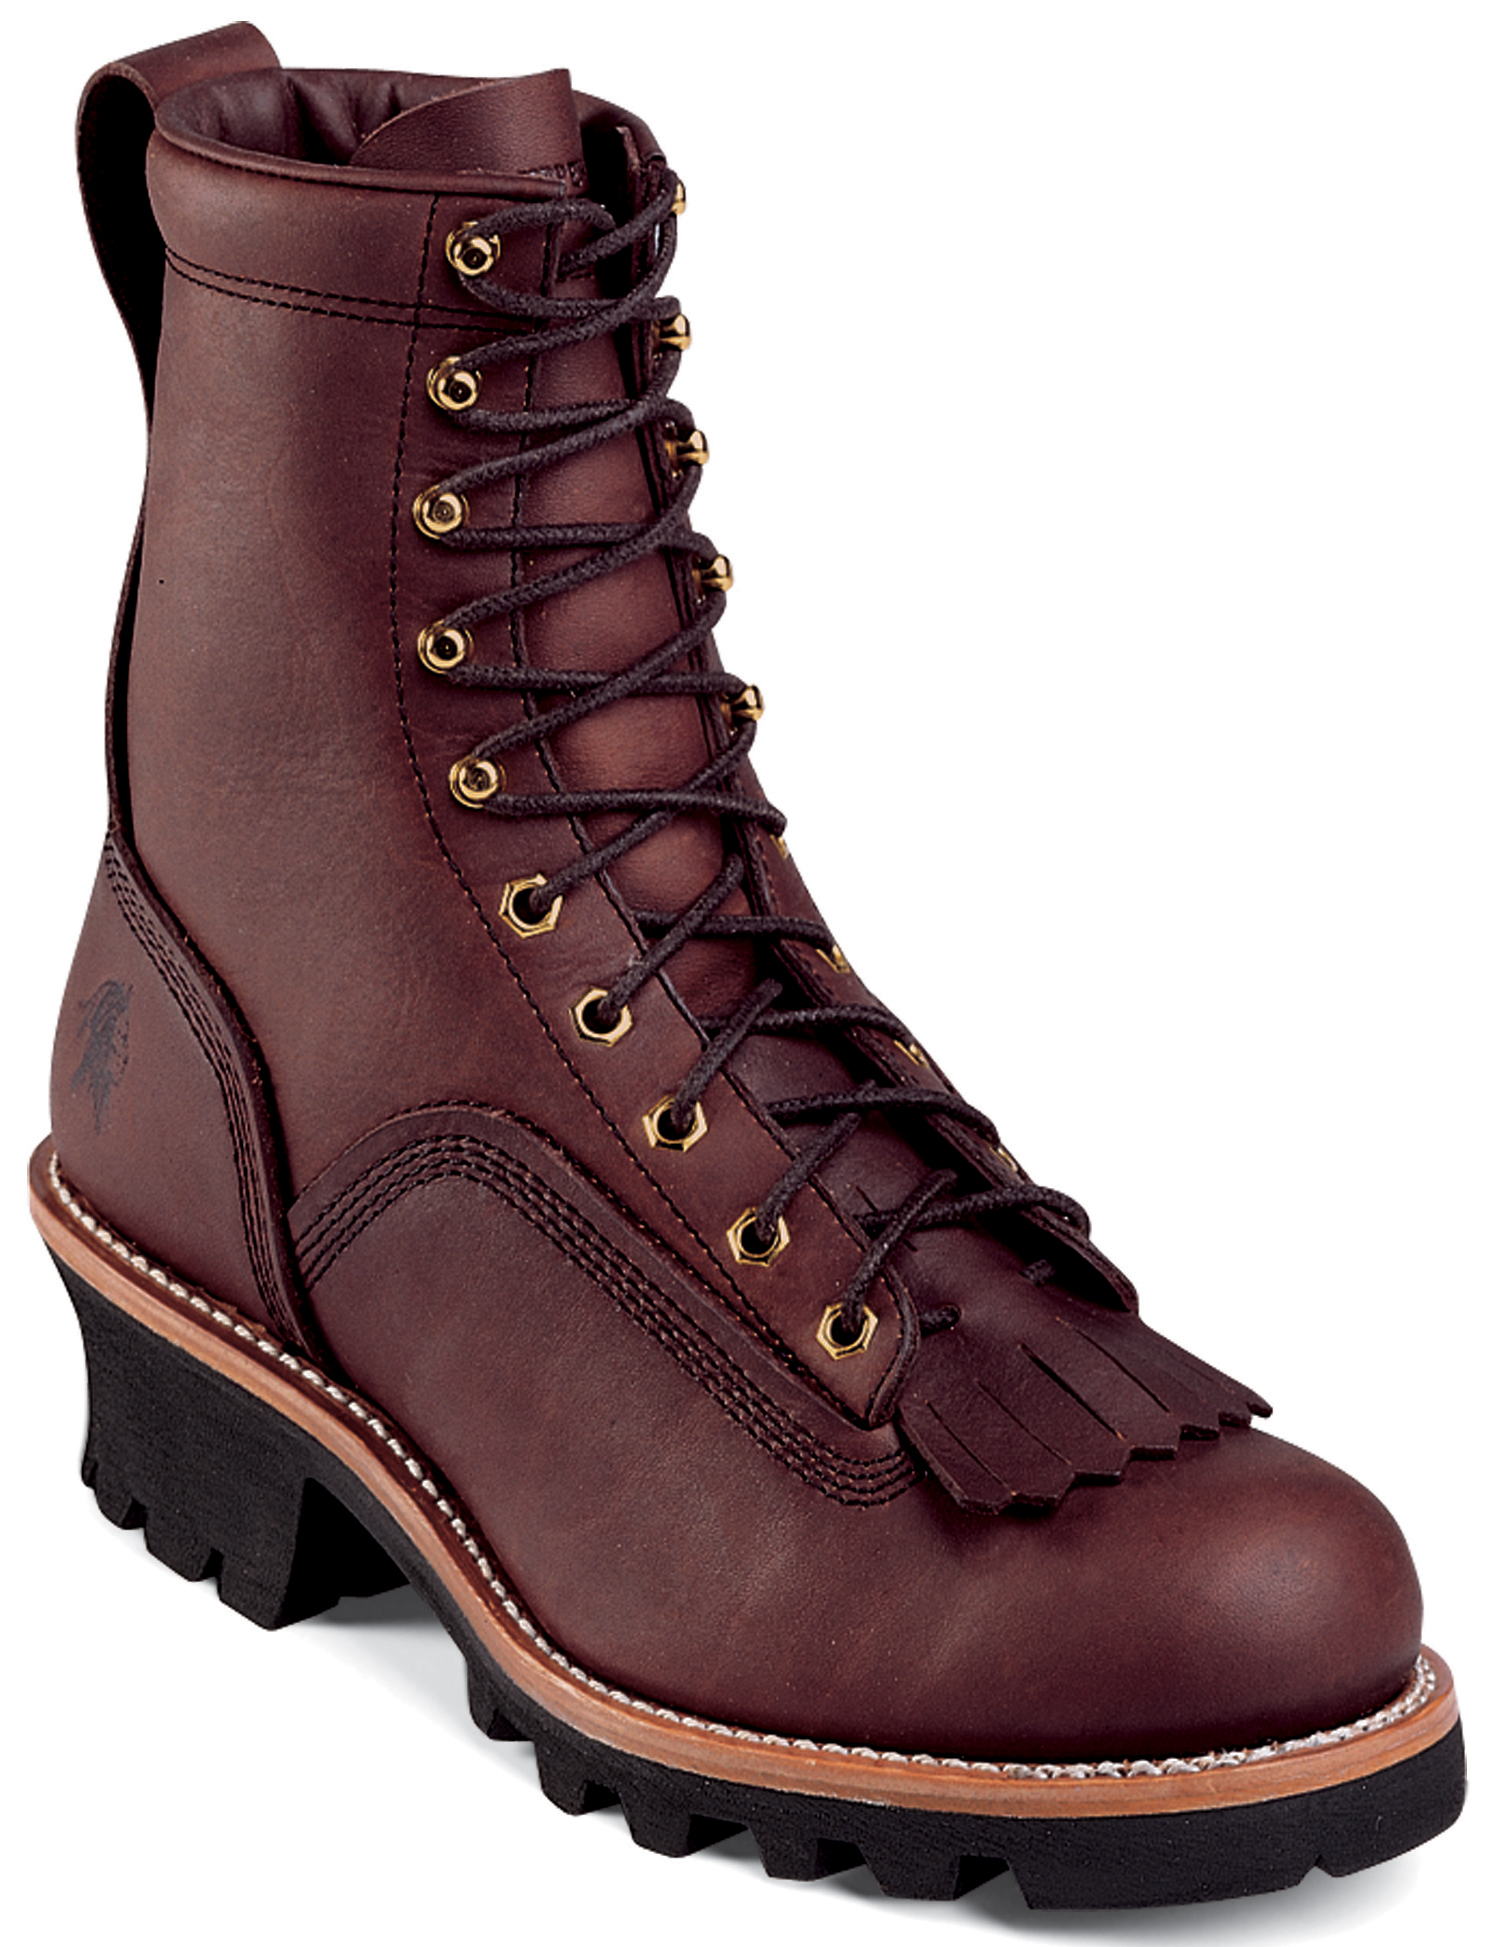 Chippewa Men's Chippewa 8-Inch Lace-To-Toe Logger Oiled Redwood Leather 73075 (E,W) at Sears.com